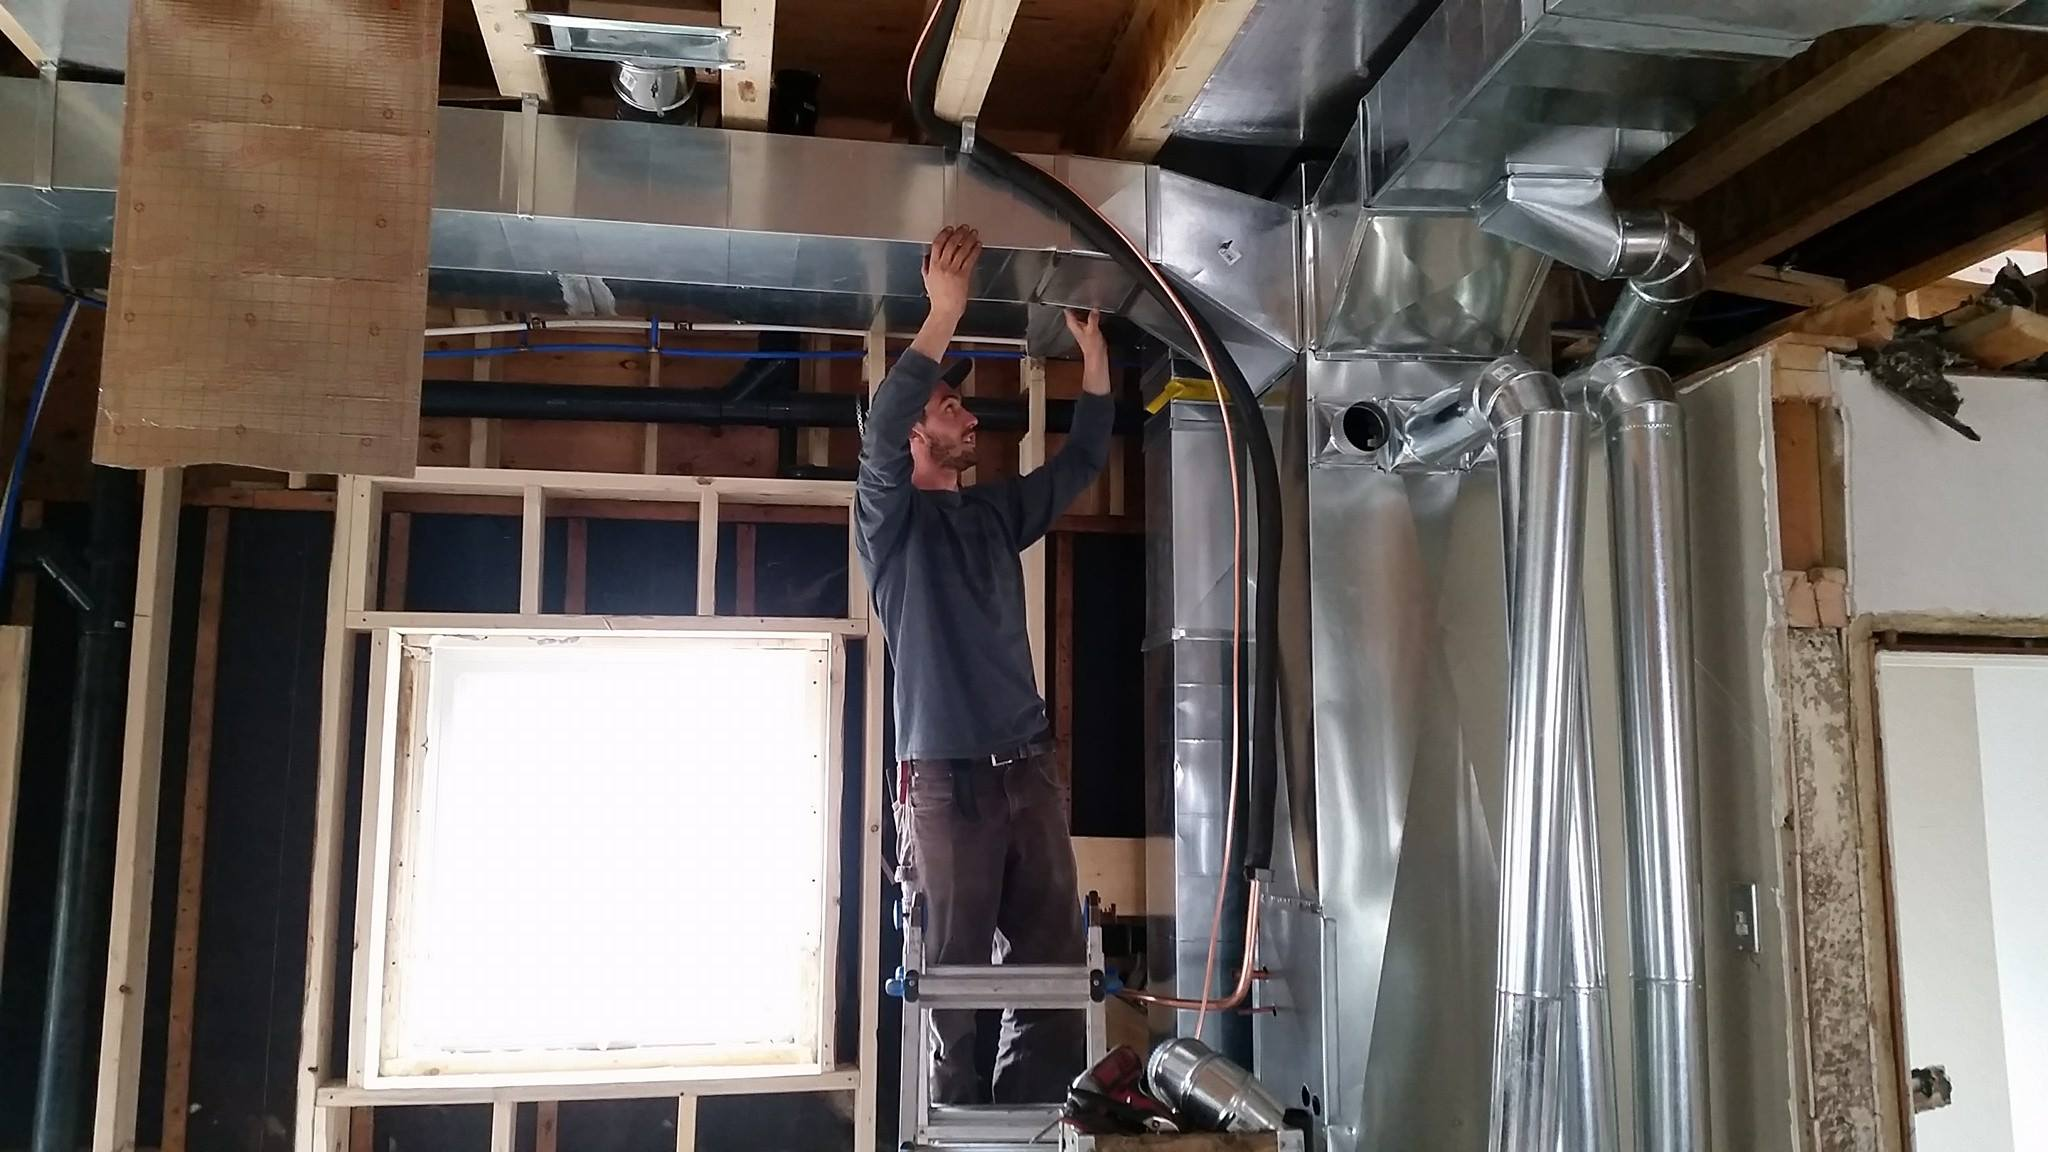 Custom Hvac work.